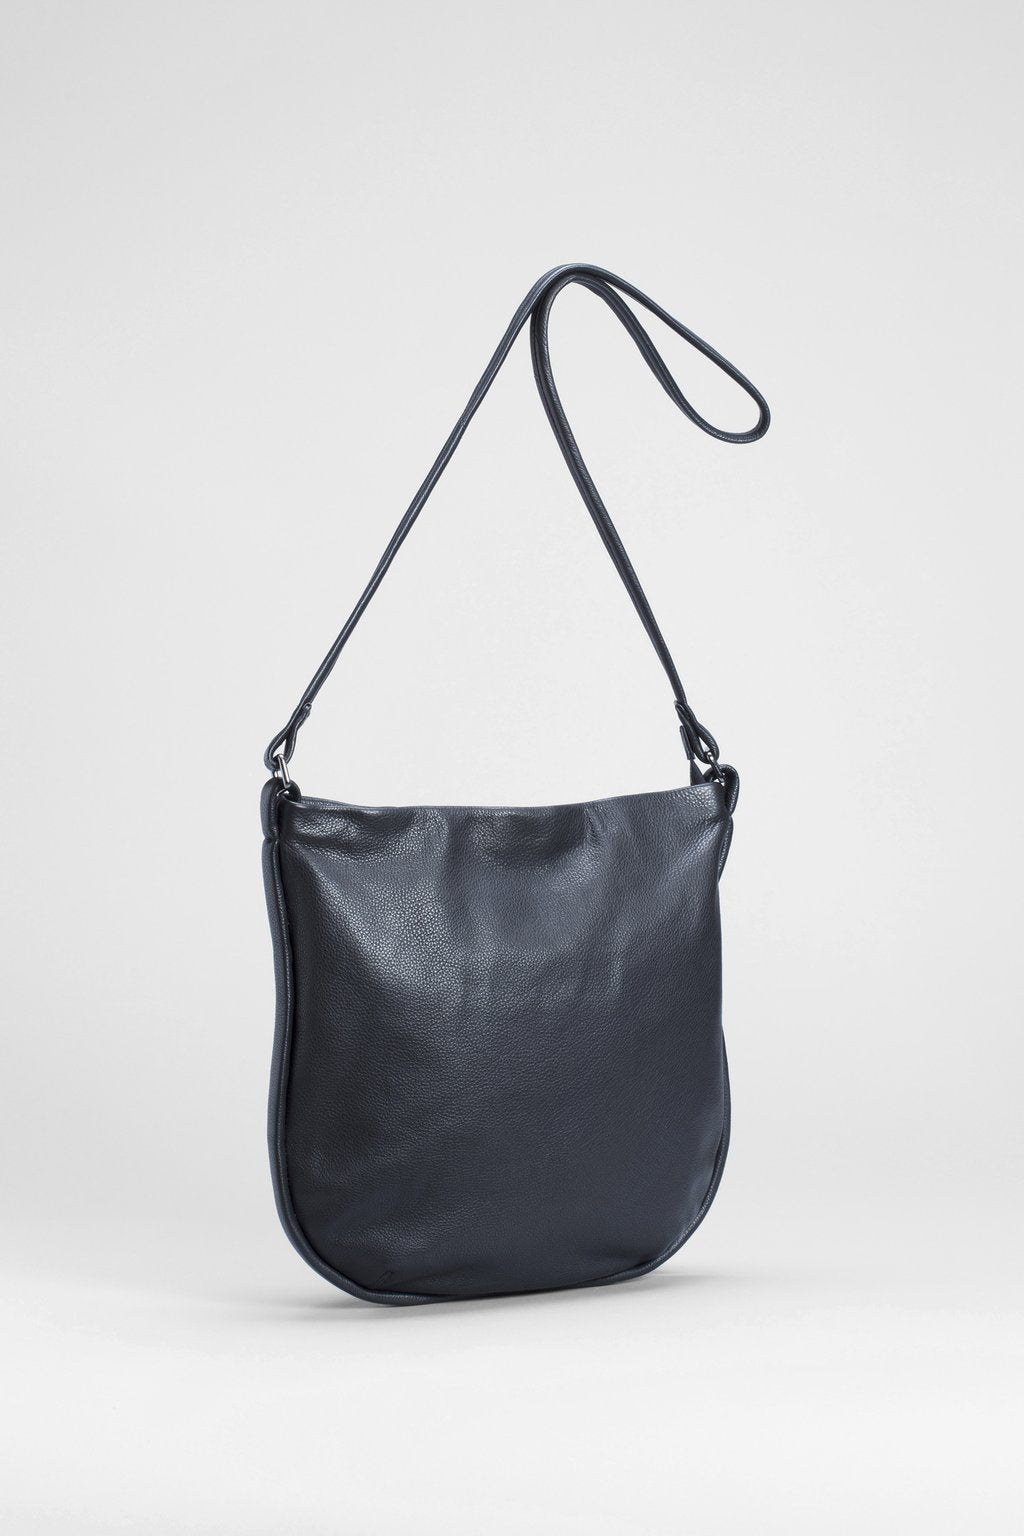 Karia Large Bag - Black